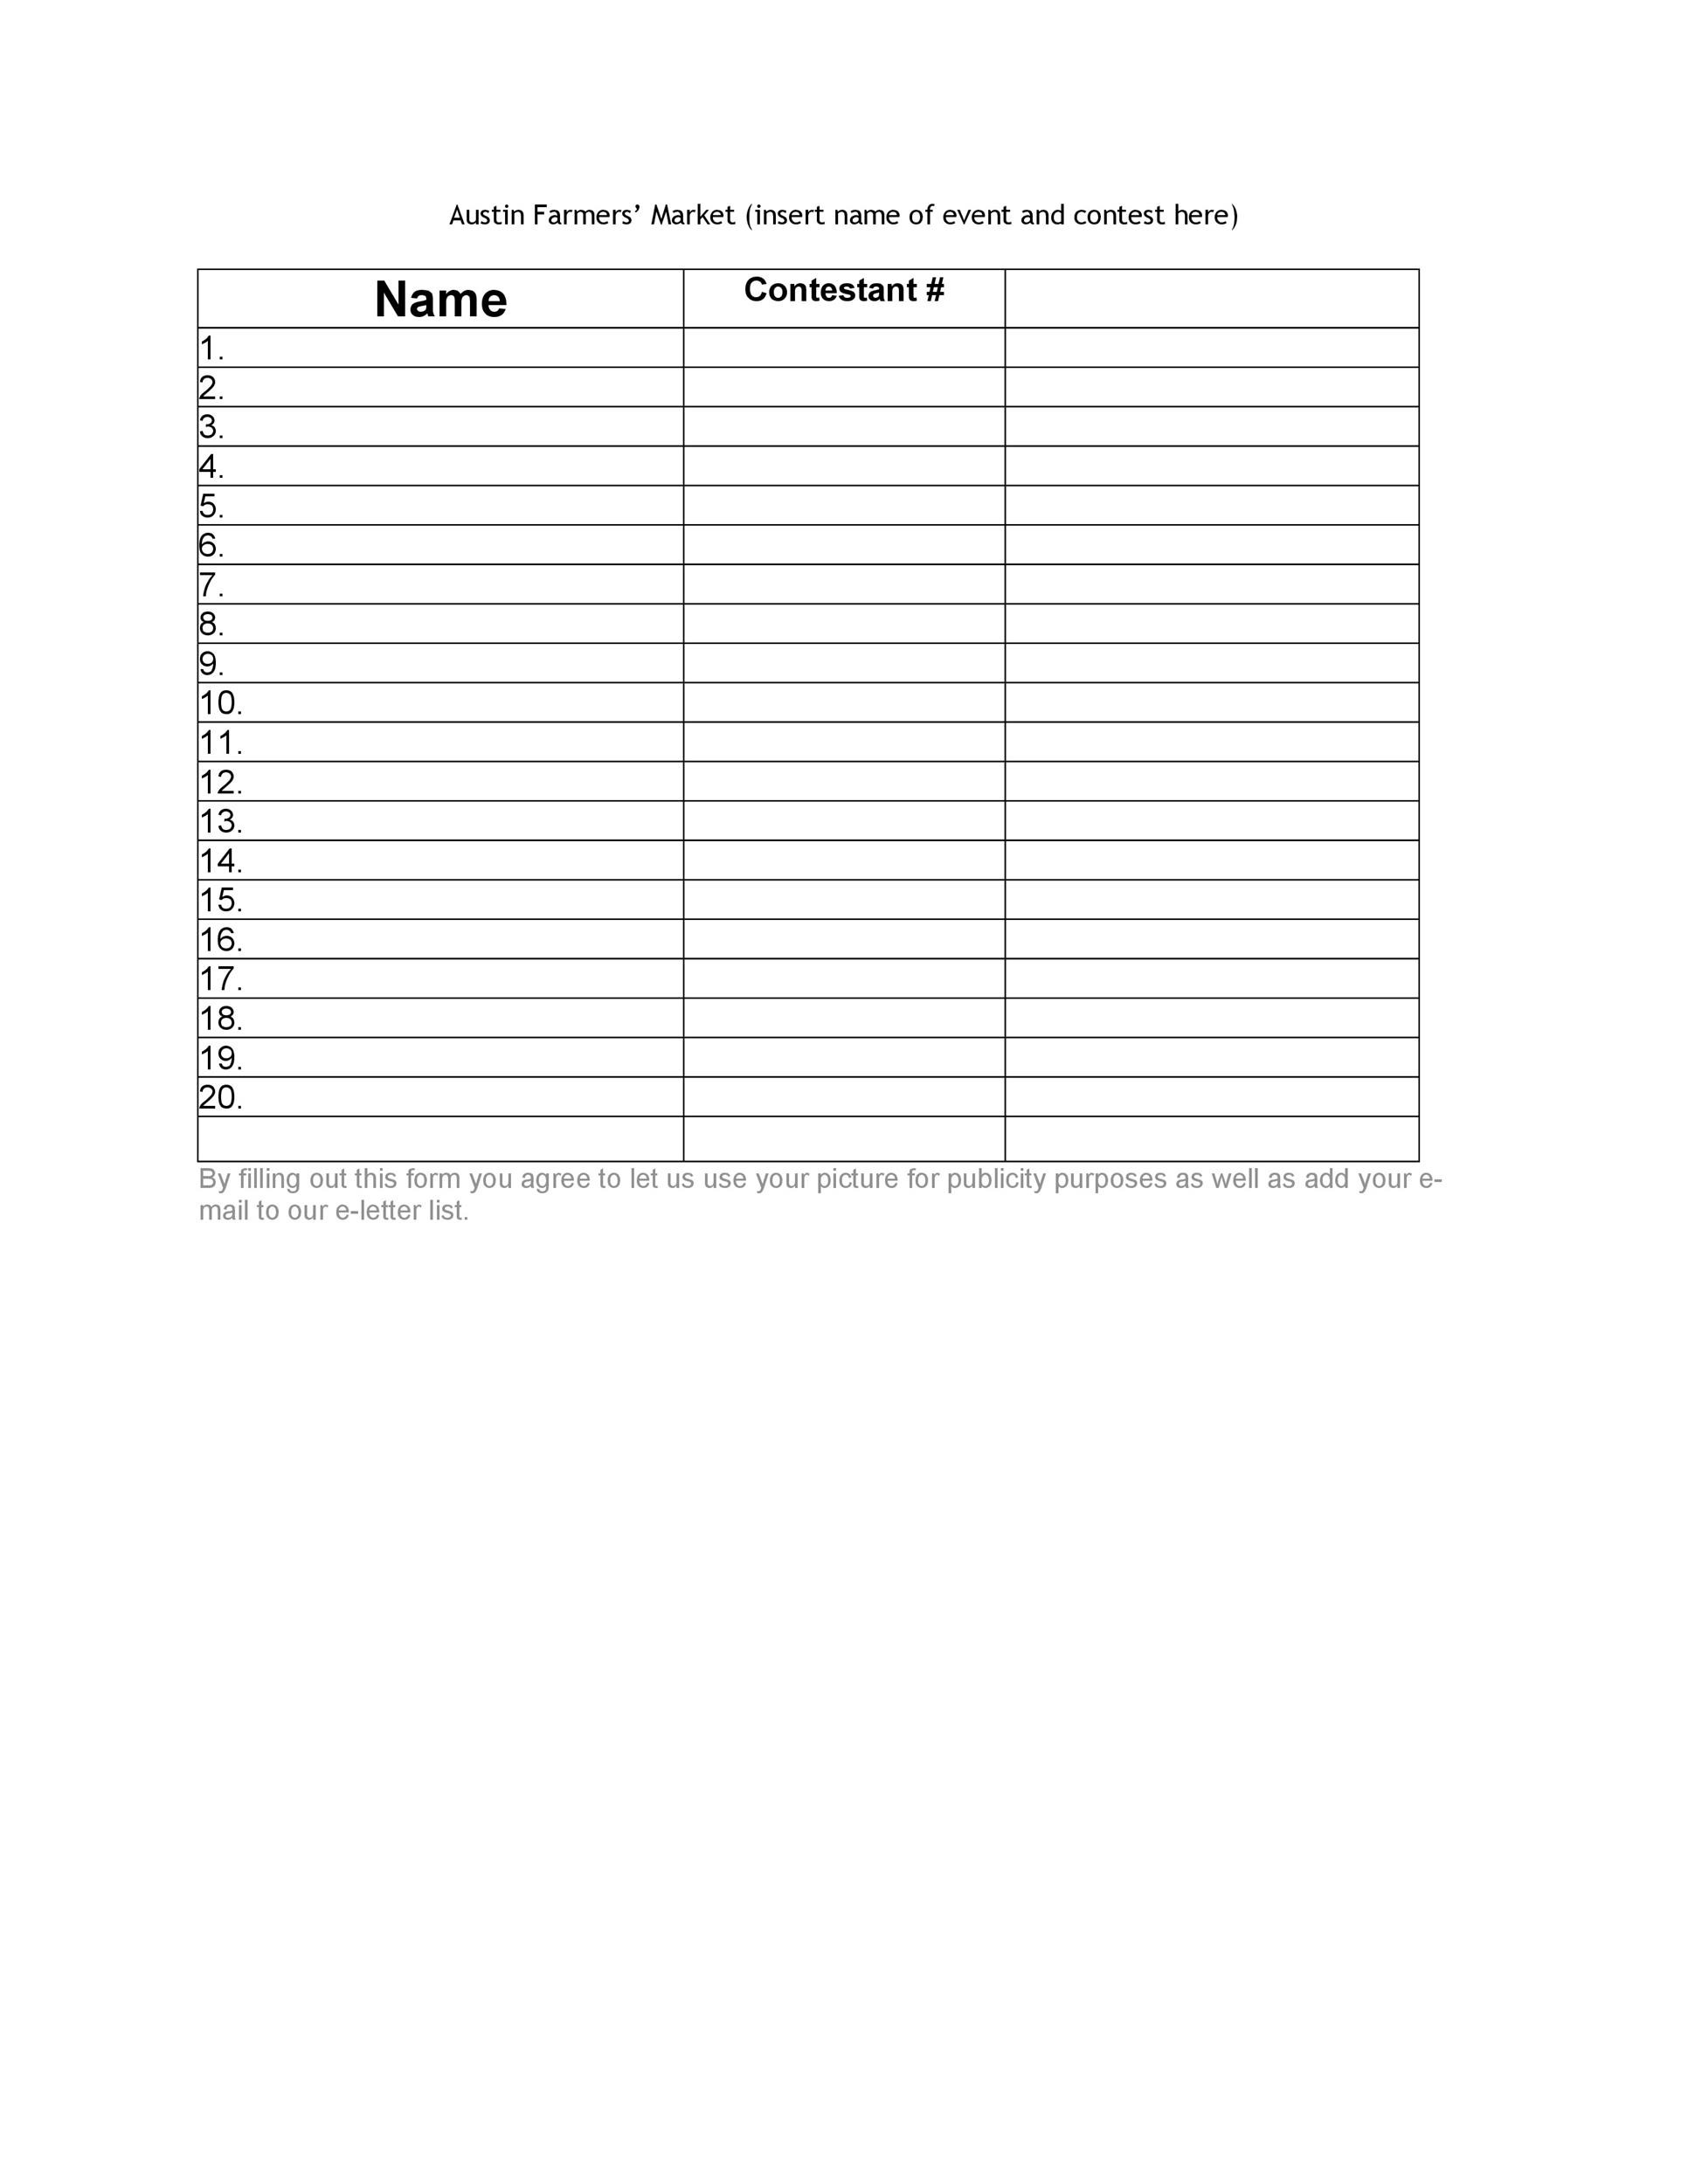 Sign In Sheet. Printable Sign In Sheets Best 25+ Sign In Sheet